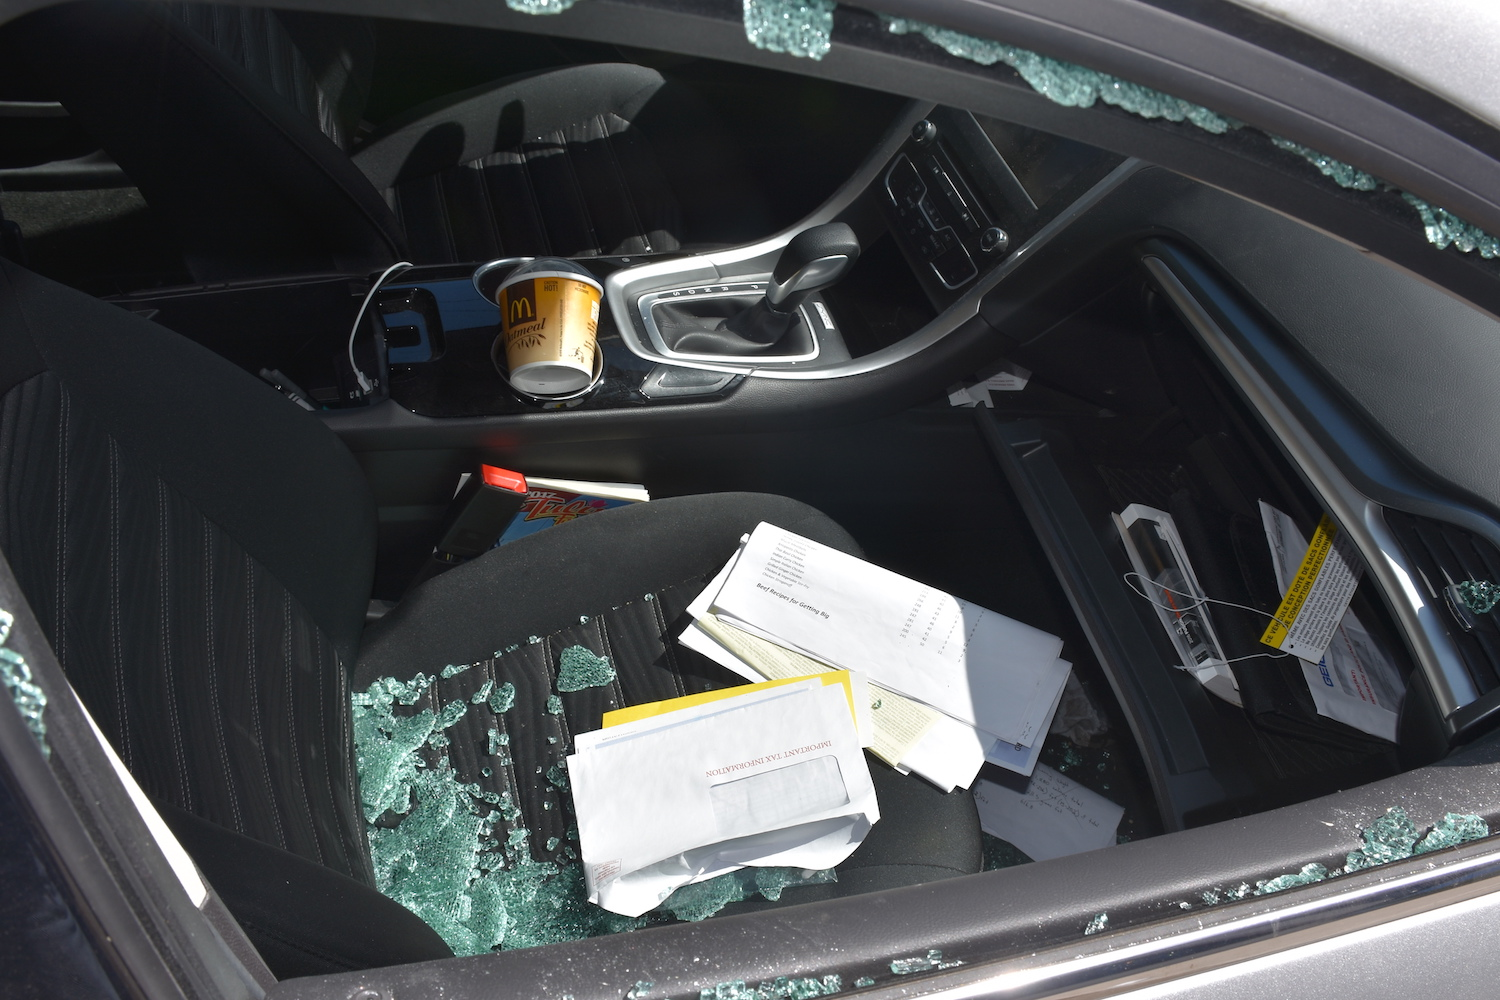 Several+cars+were+broken+into+outside+Lincoln+on+May+8.